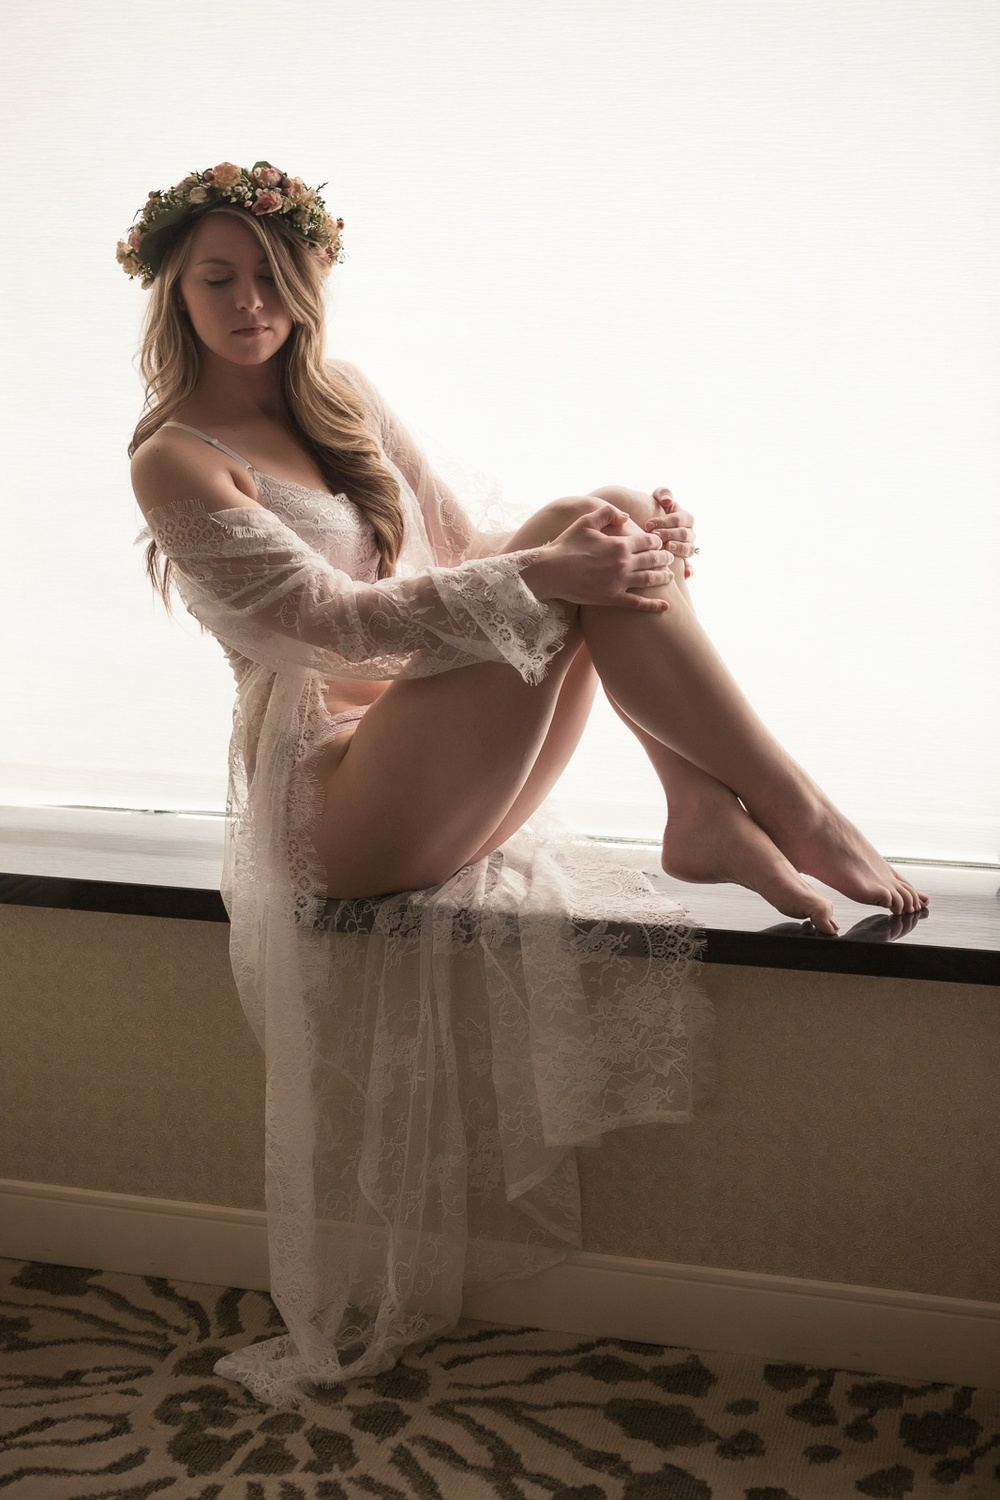 orange_county_boudoir_studio